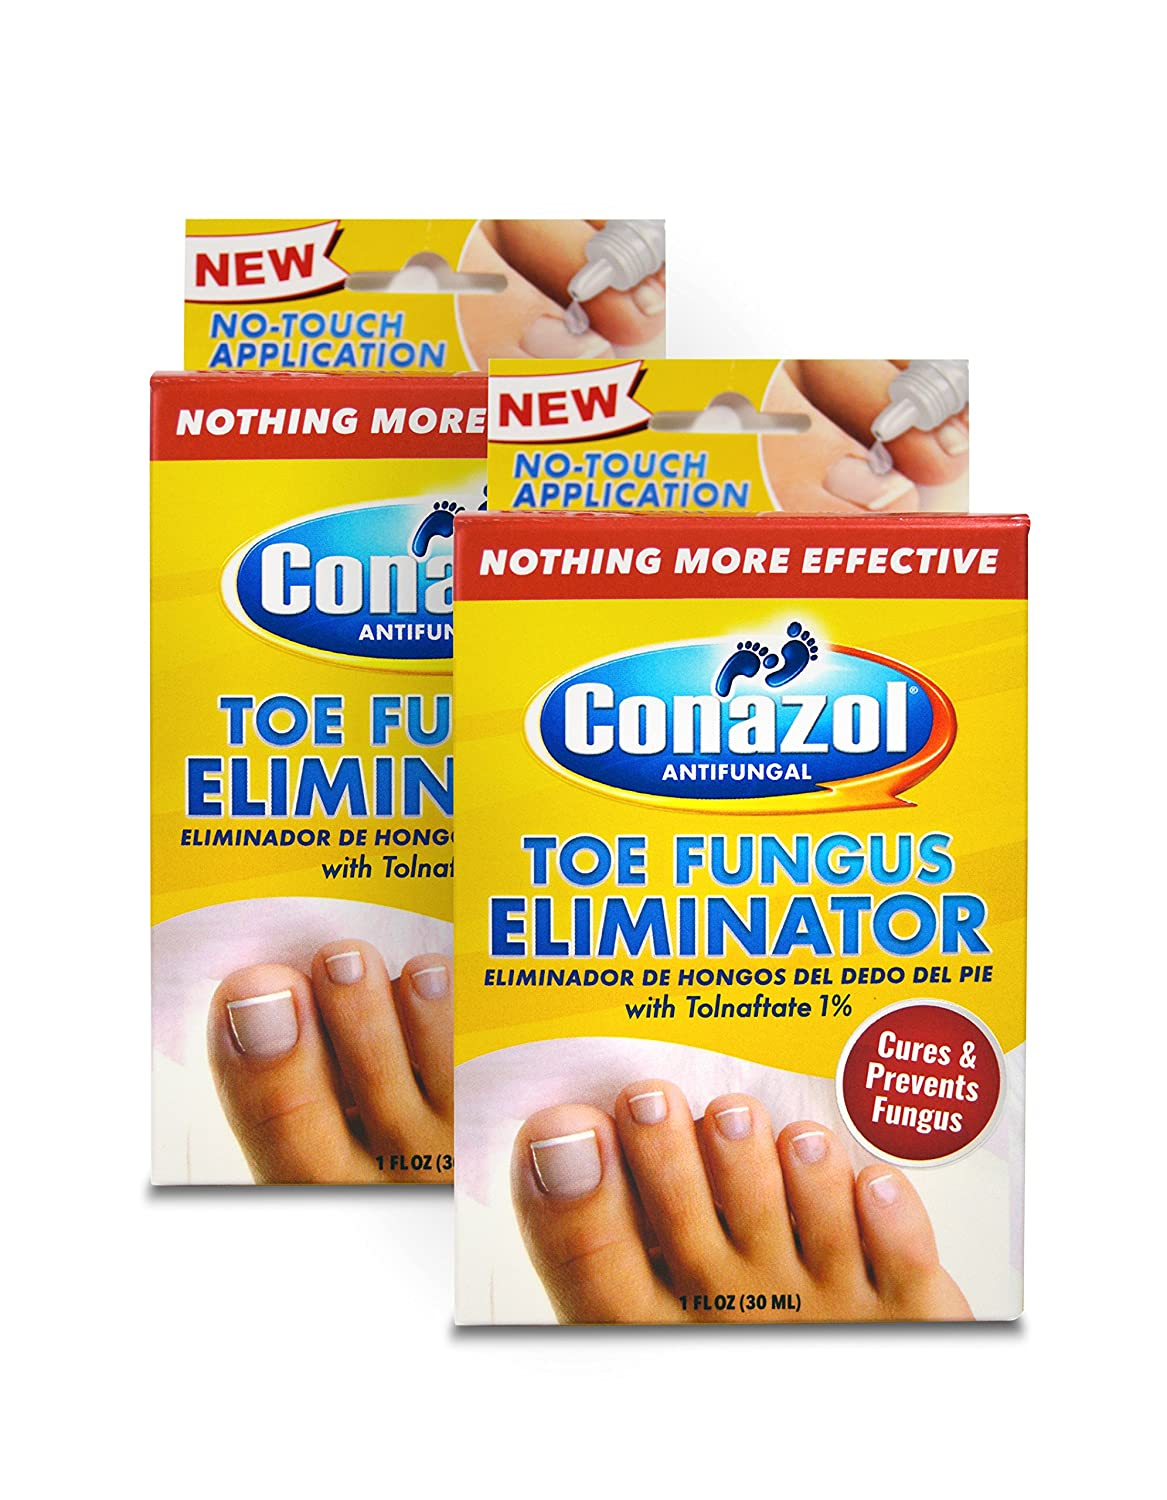 Amazon.com: 2 Pack Conazol Toe Fungus Eliminator with Tolnaftate 1% Clinically Proven to Cure and Prevent Foot Fungus and No-Touch Applicator Helps Stop ...